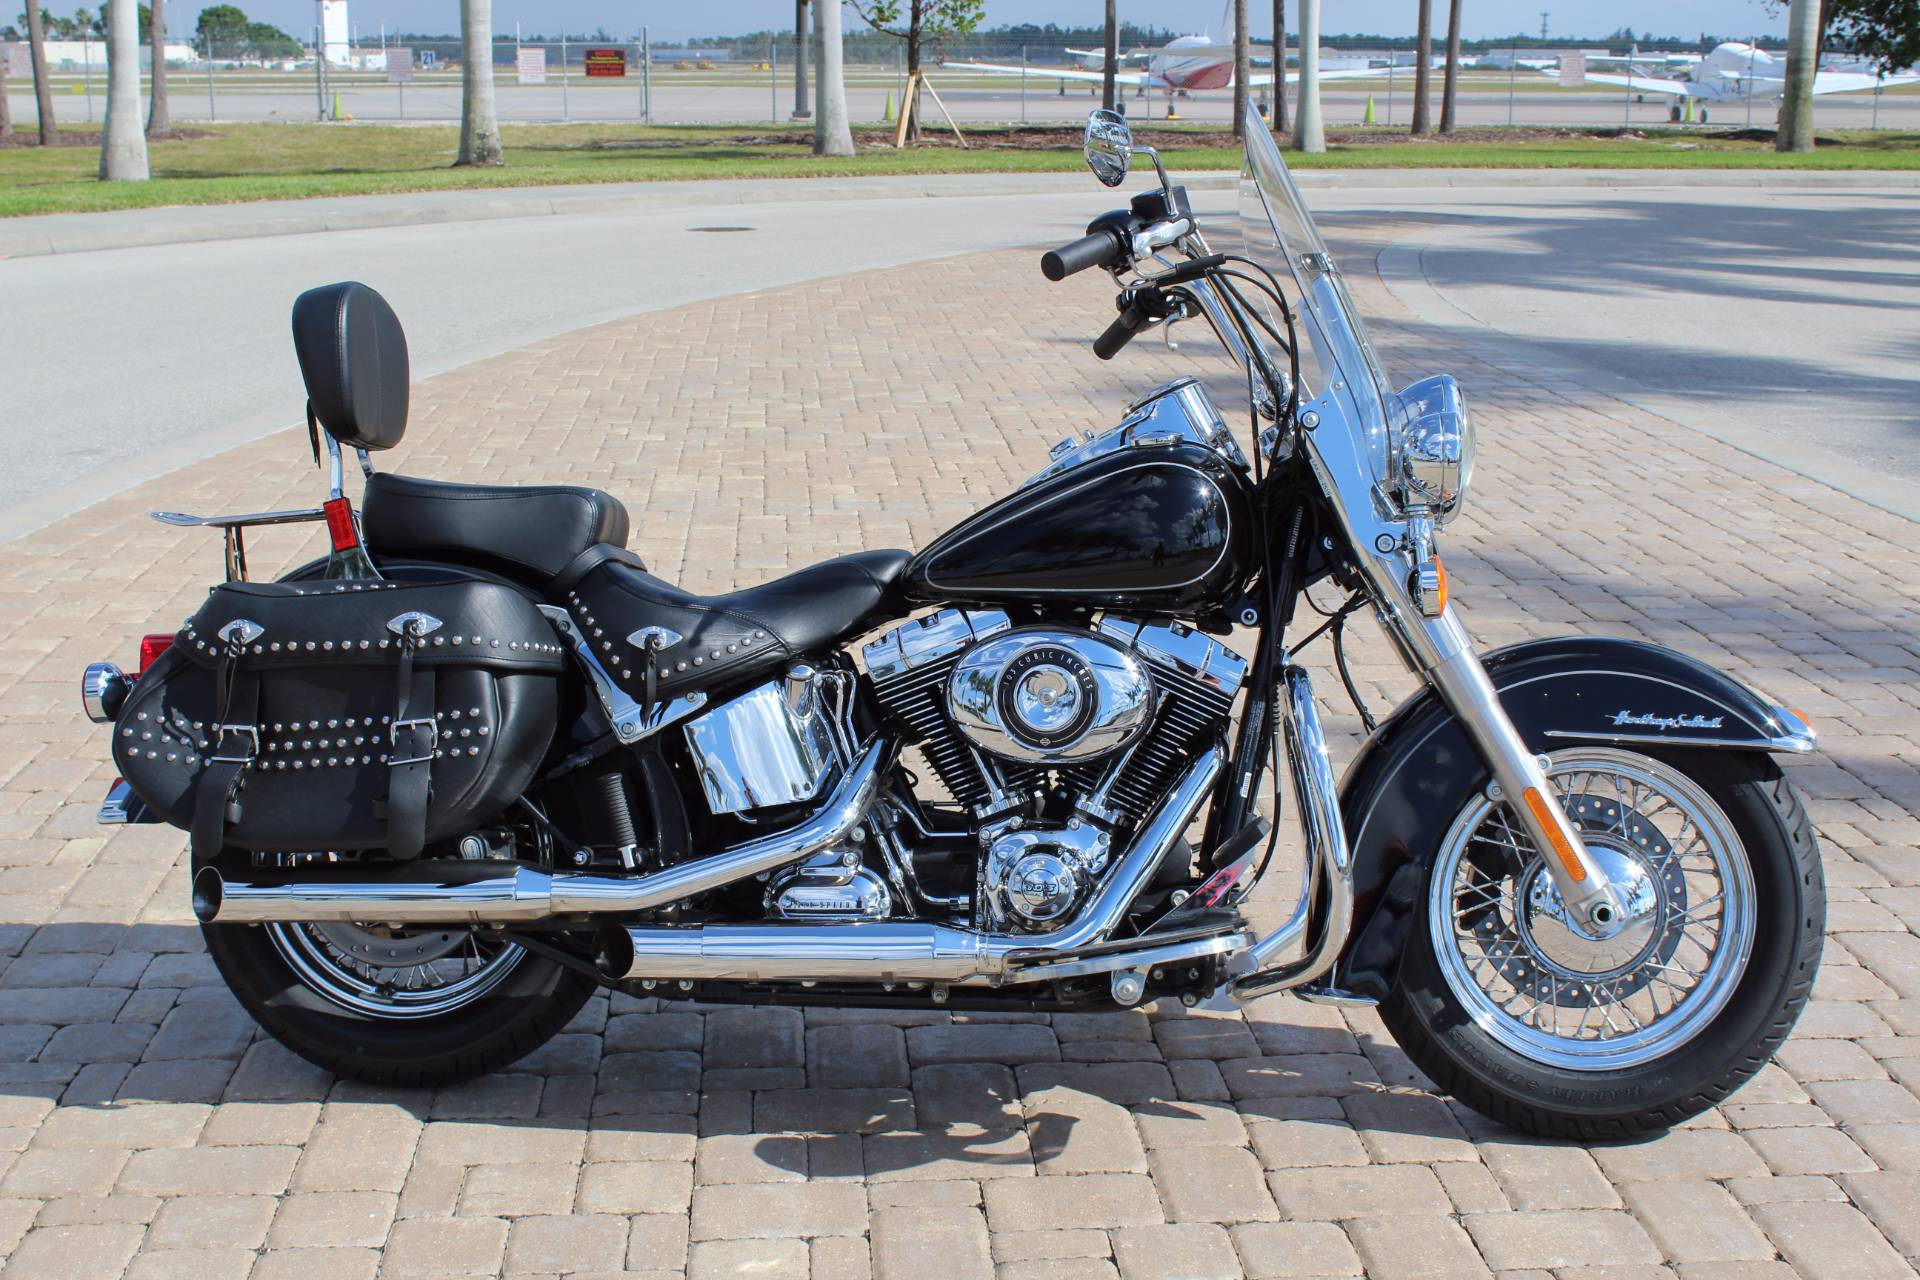 Used 2015 Harley-Davidson Heritage Softail® Classic Motorcycles in ...